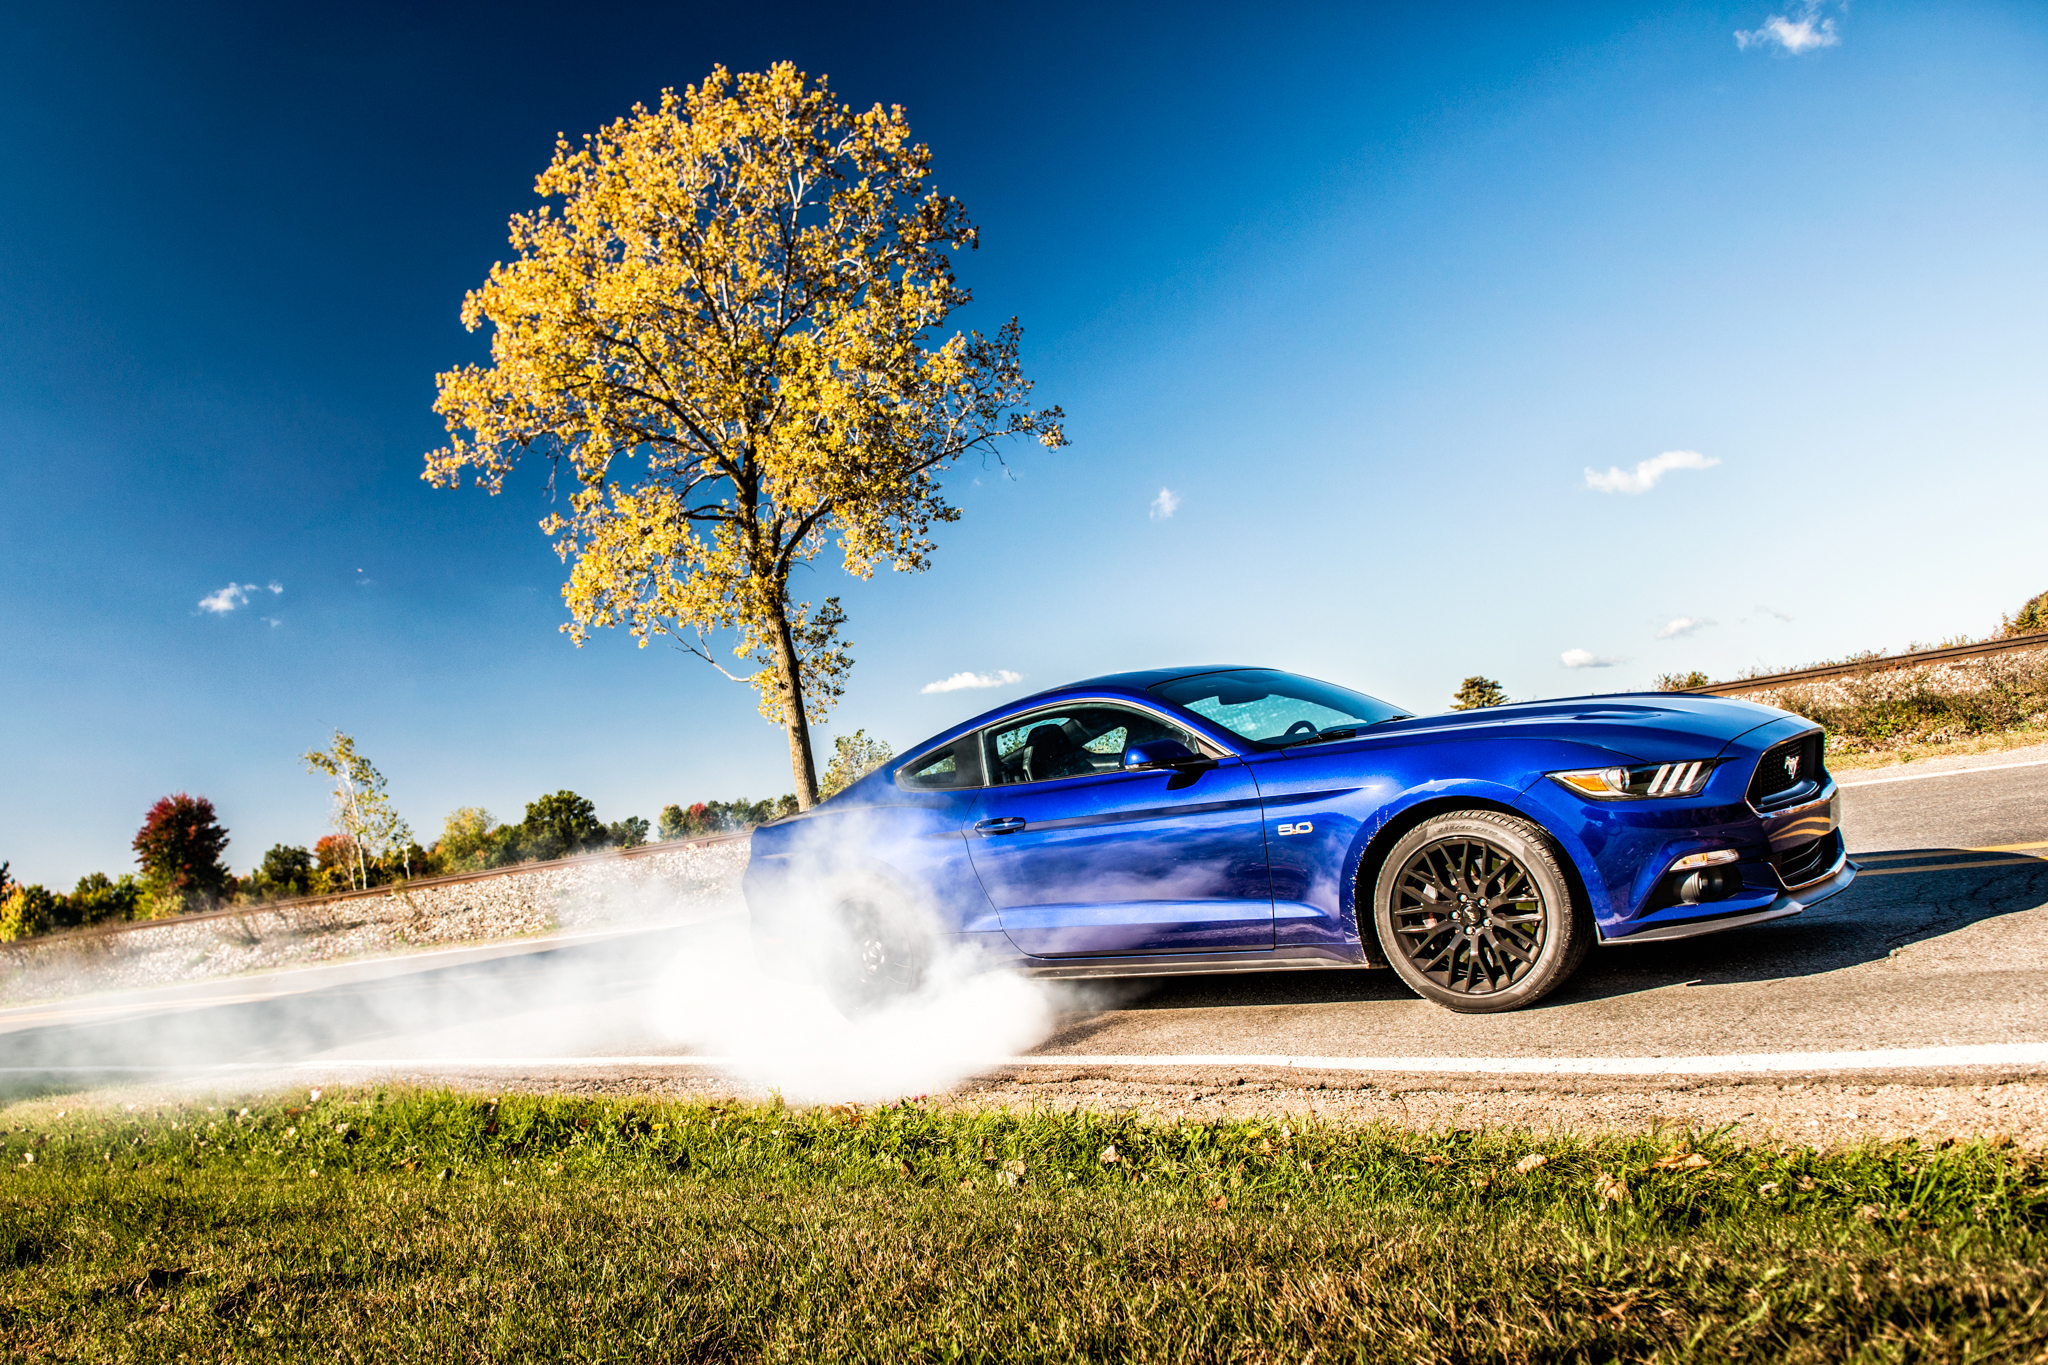 Ford Mustang Gt Burnout Photo   King Of The Street